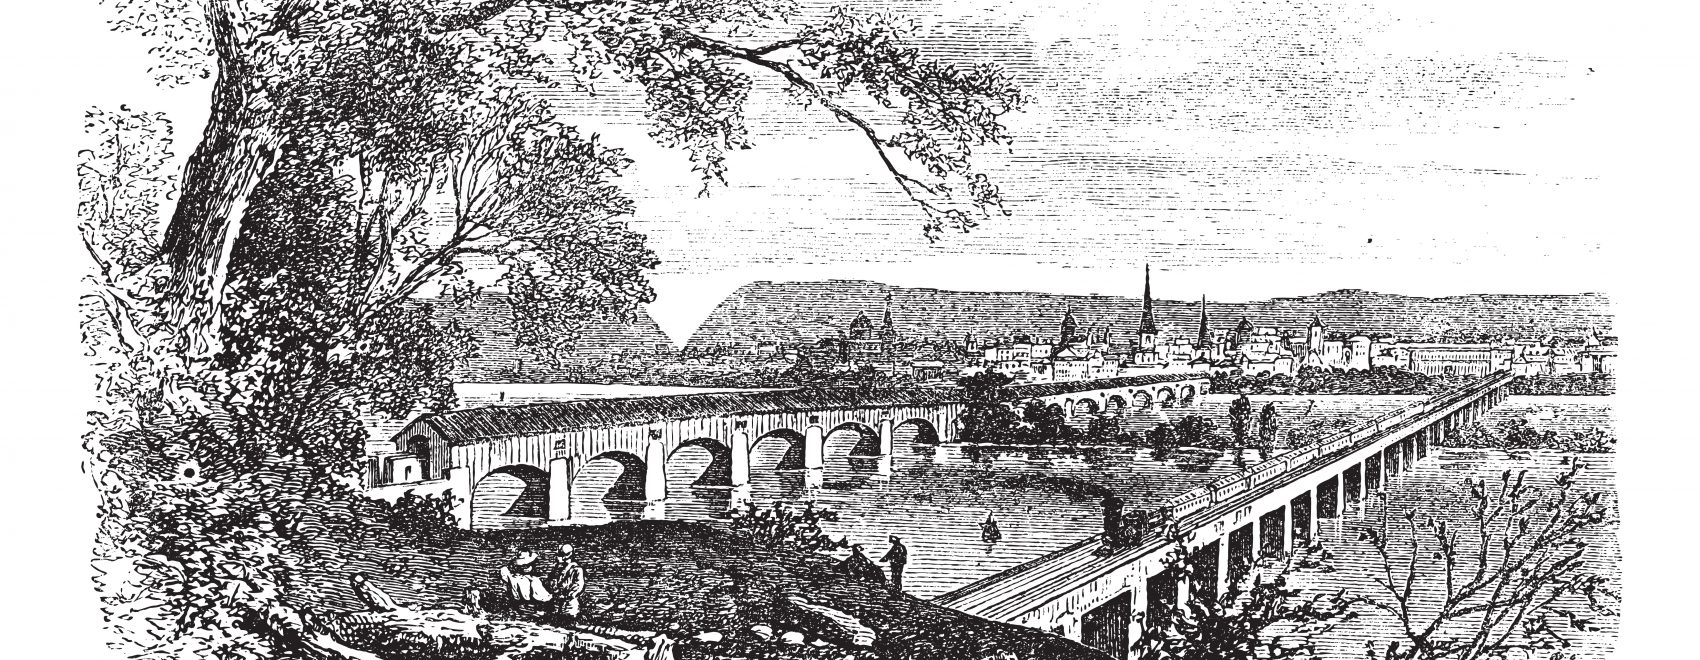 Harrisburg,Pennsylvania, United States View from the left bank of the Susquehanna vintage engraving. Old engraved illustration of bridges across the river at harrisburg, during 1890s.